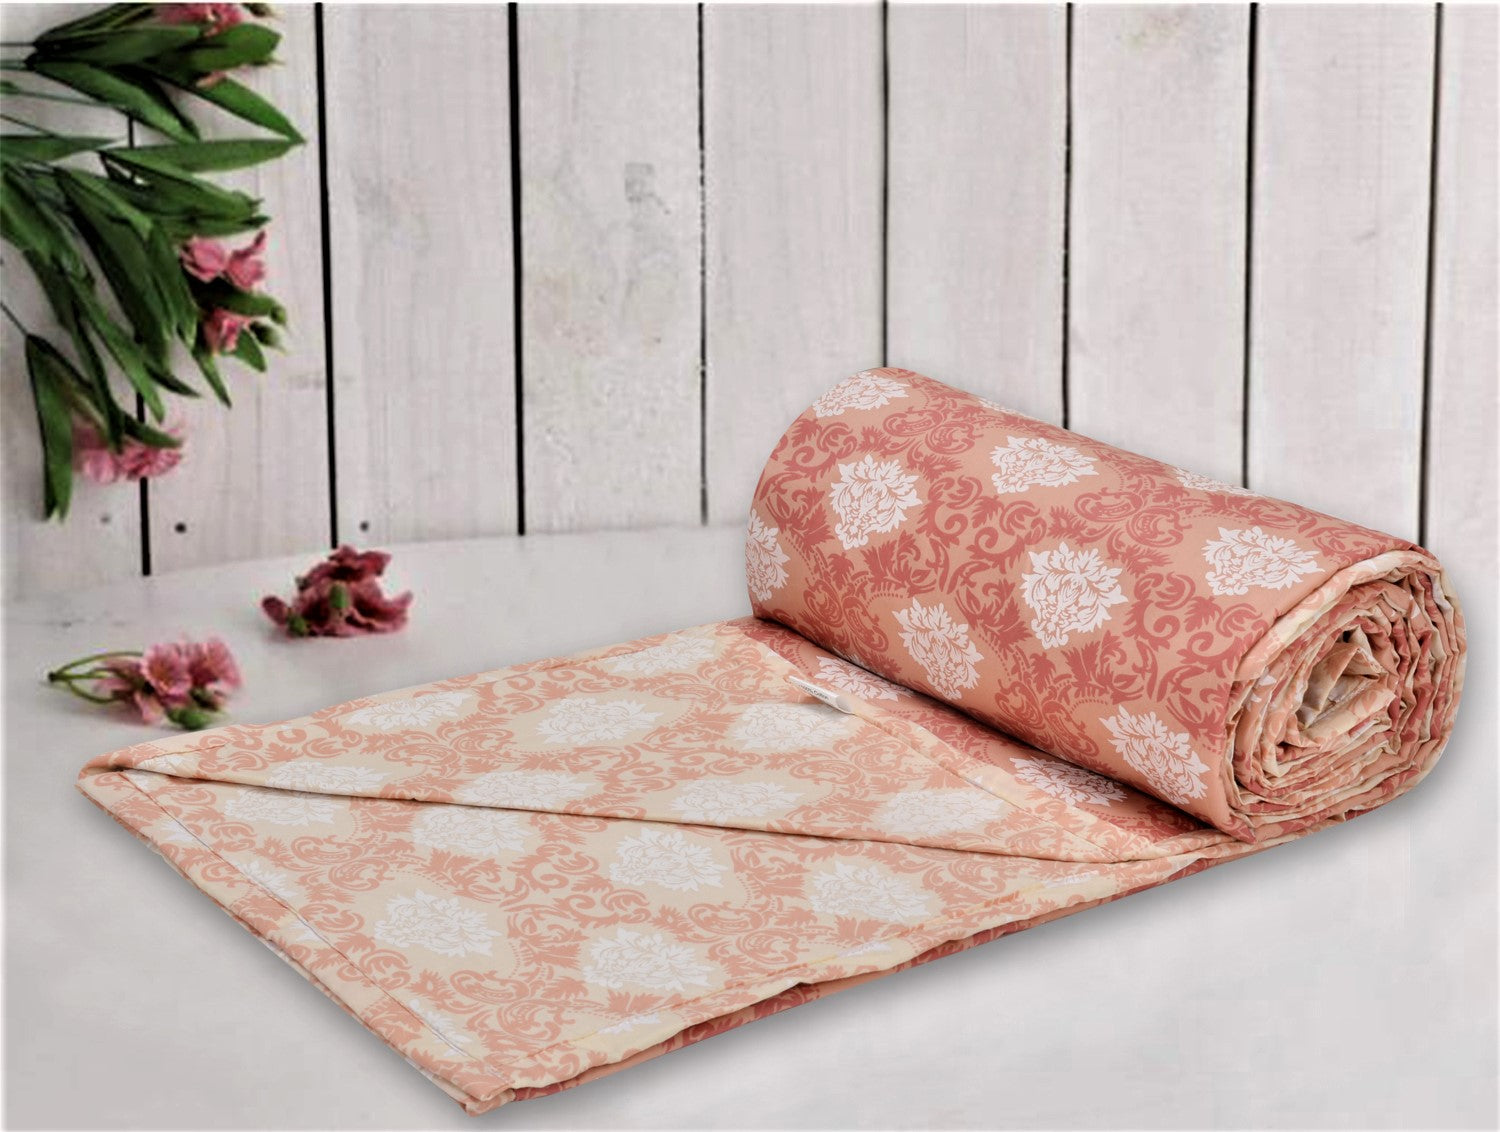 Trance Home Linen Cotton Single Dohar-ROYALE Peach Cream